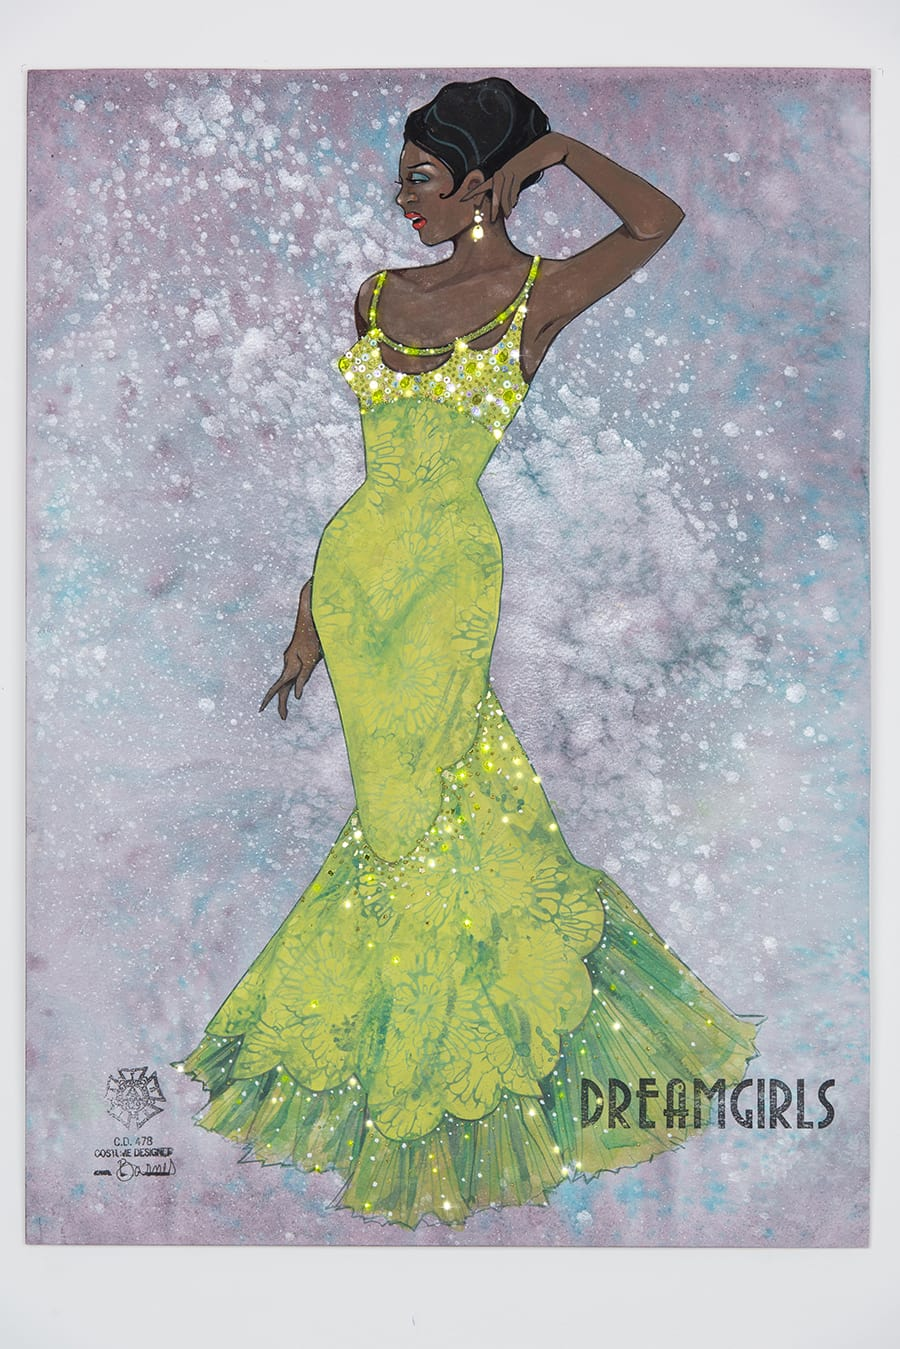 Costume designs for Dreamgirls (Credit: Original sketches by Gregg Barnes)